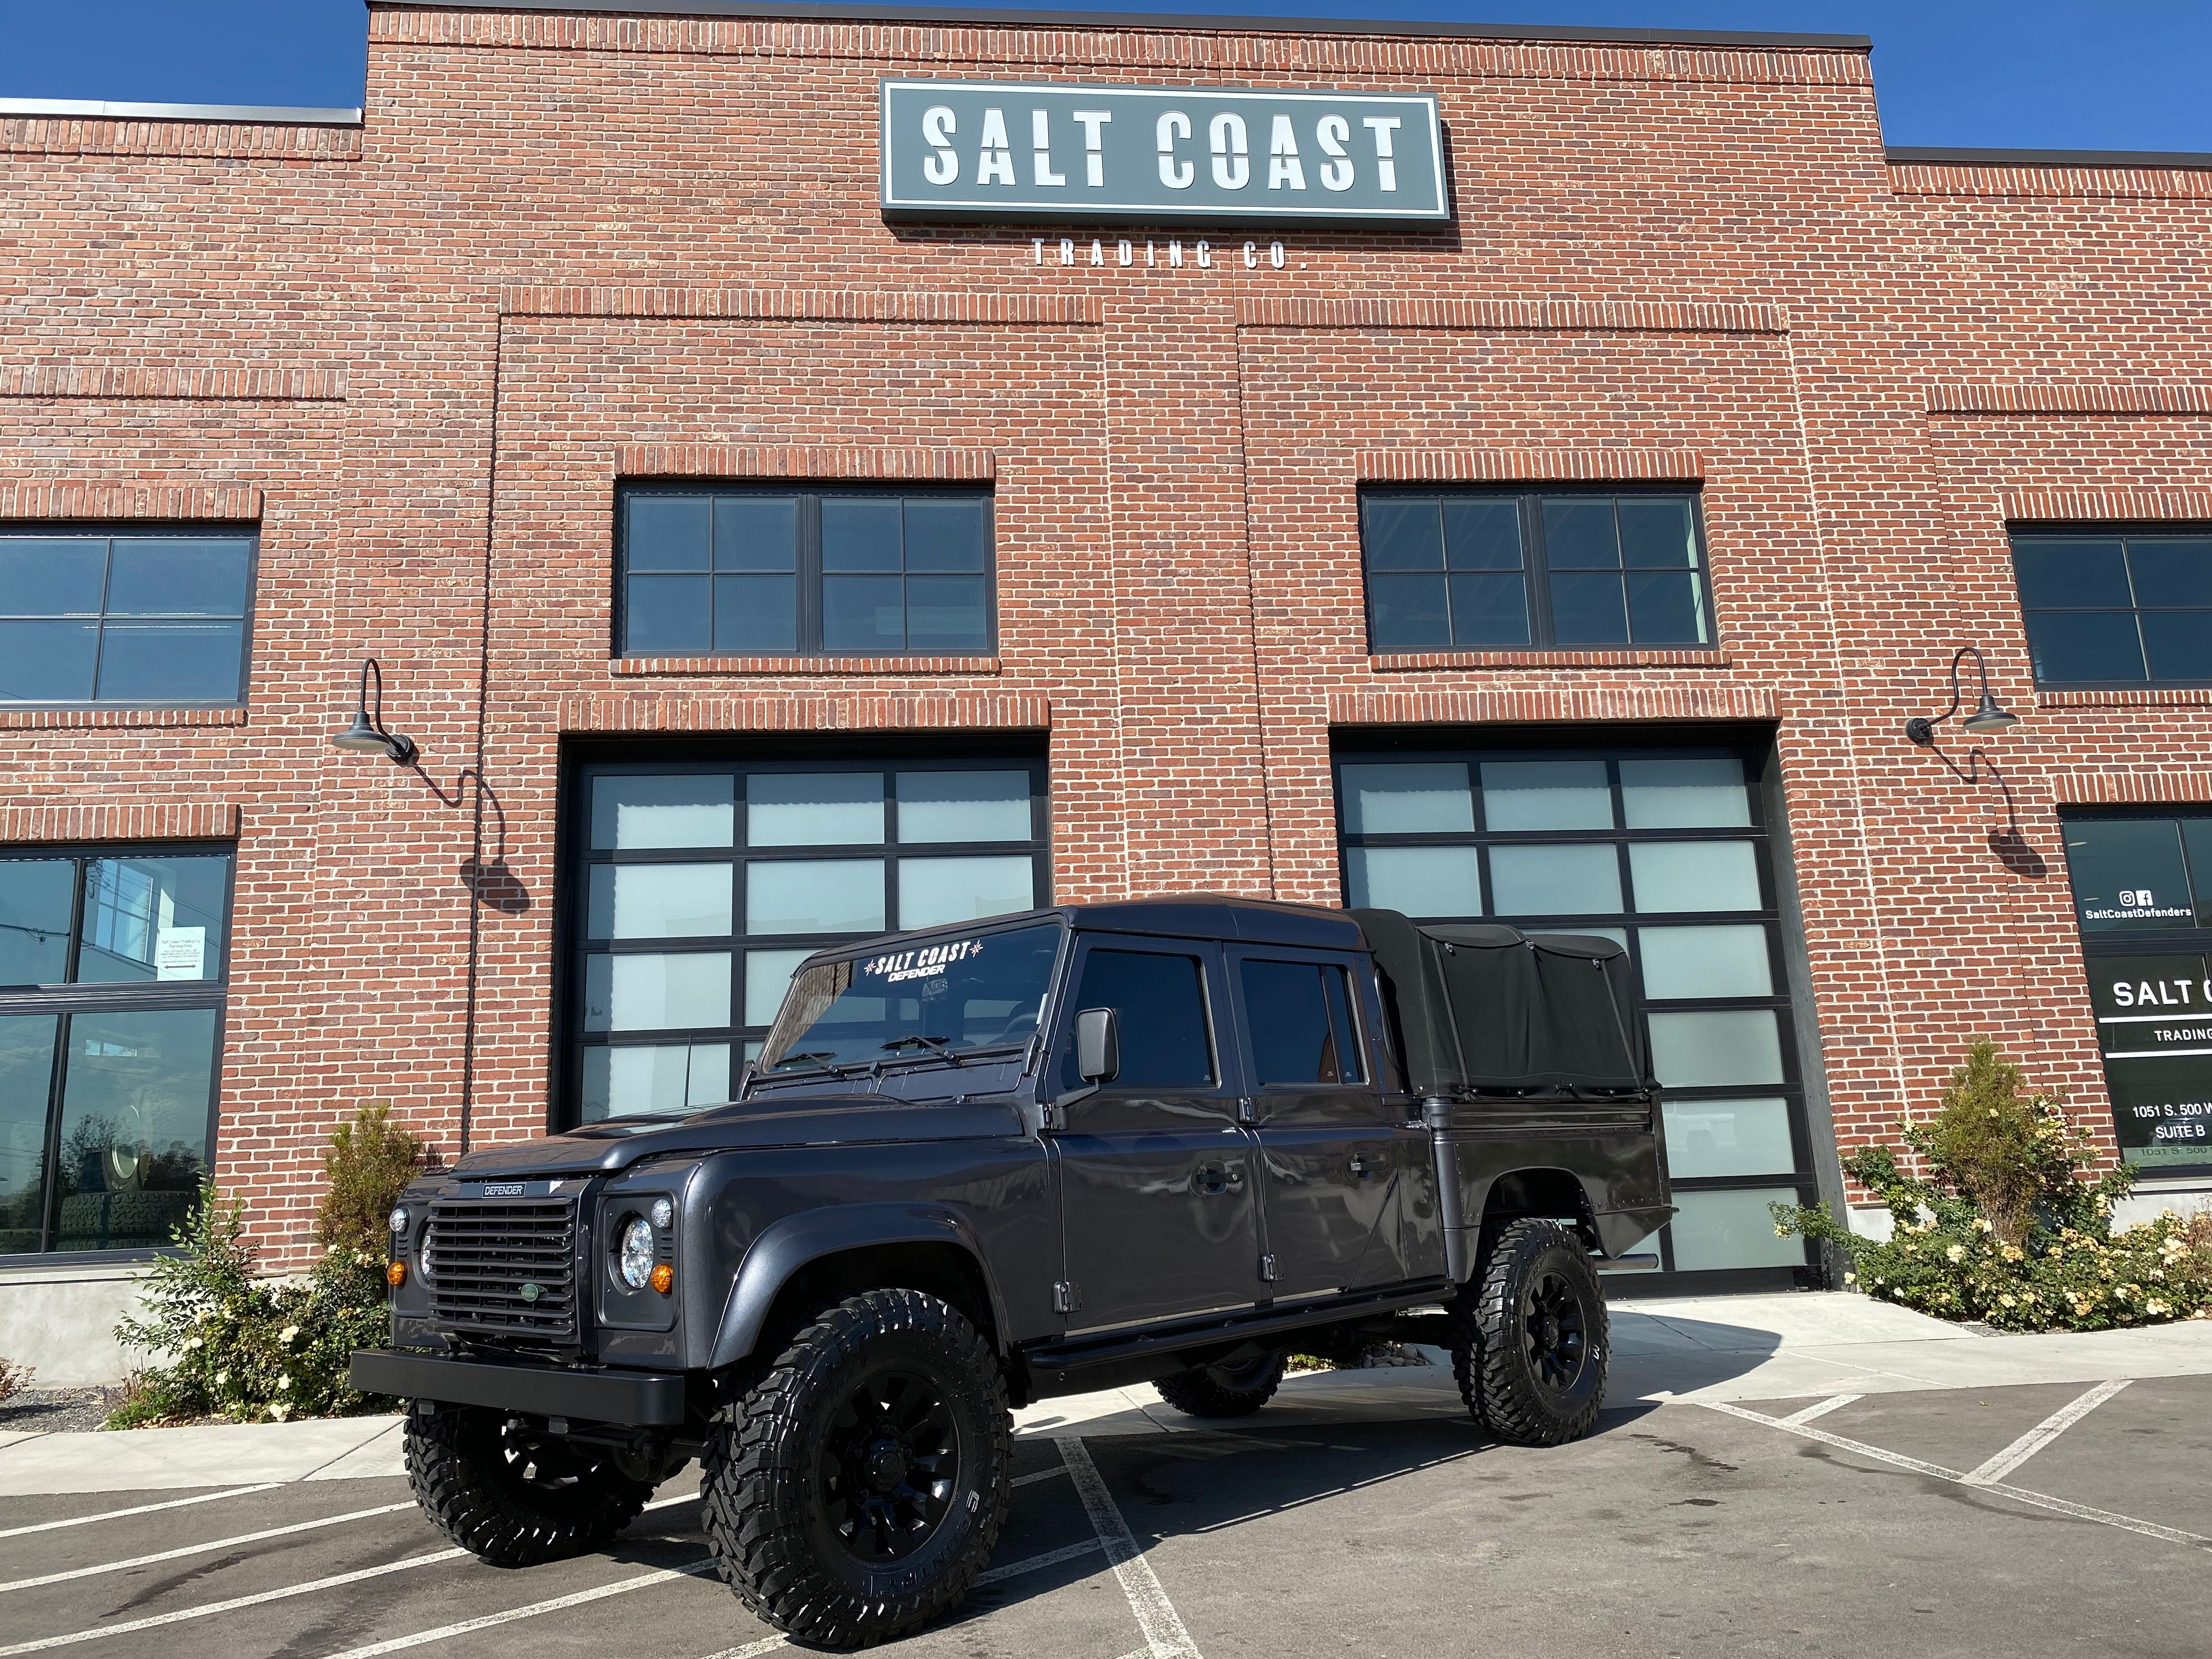 Pre-Owned 1994 Land Rover Defender 130 4WD